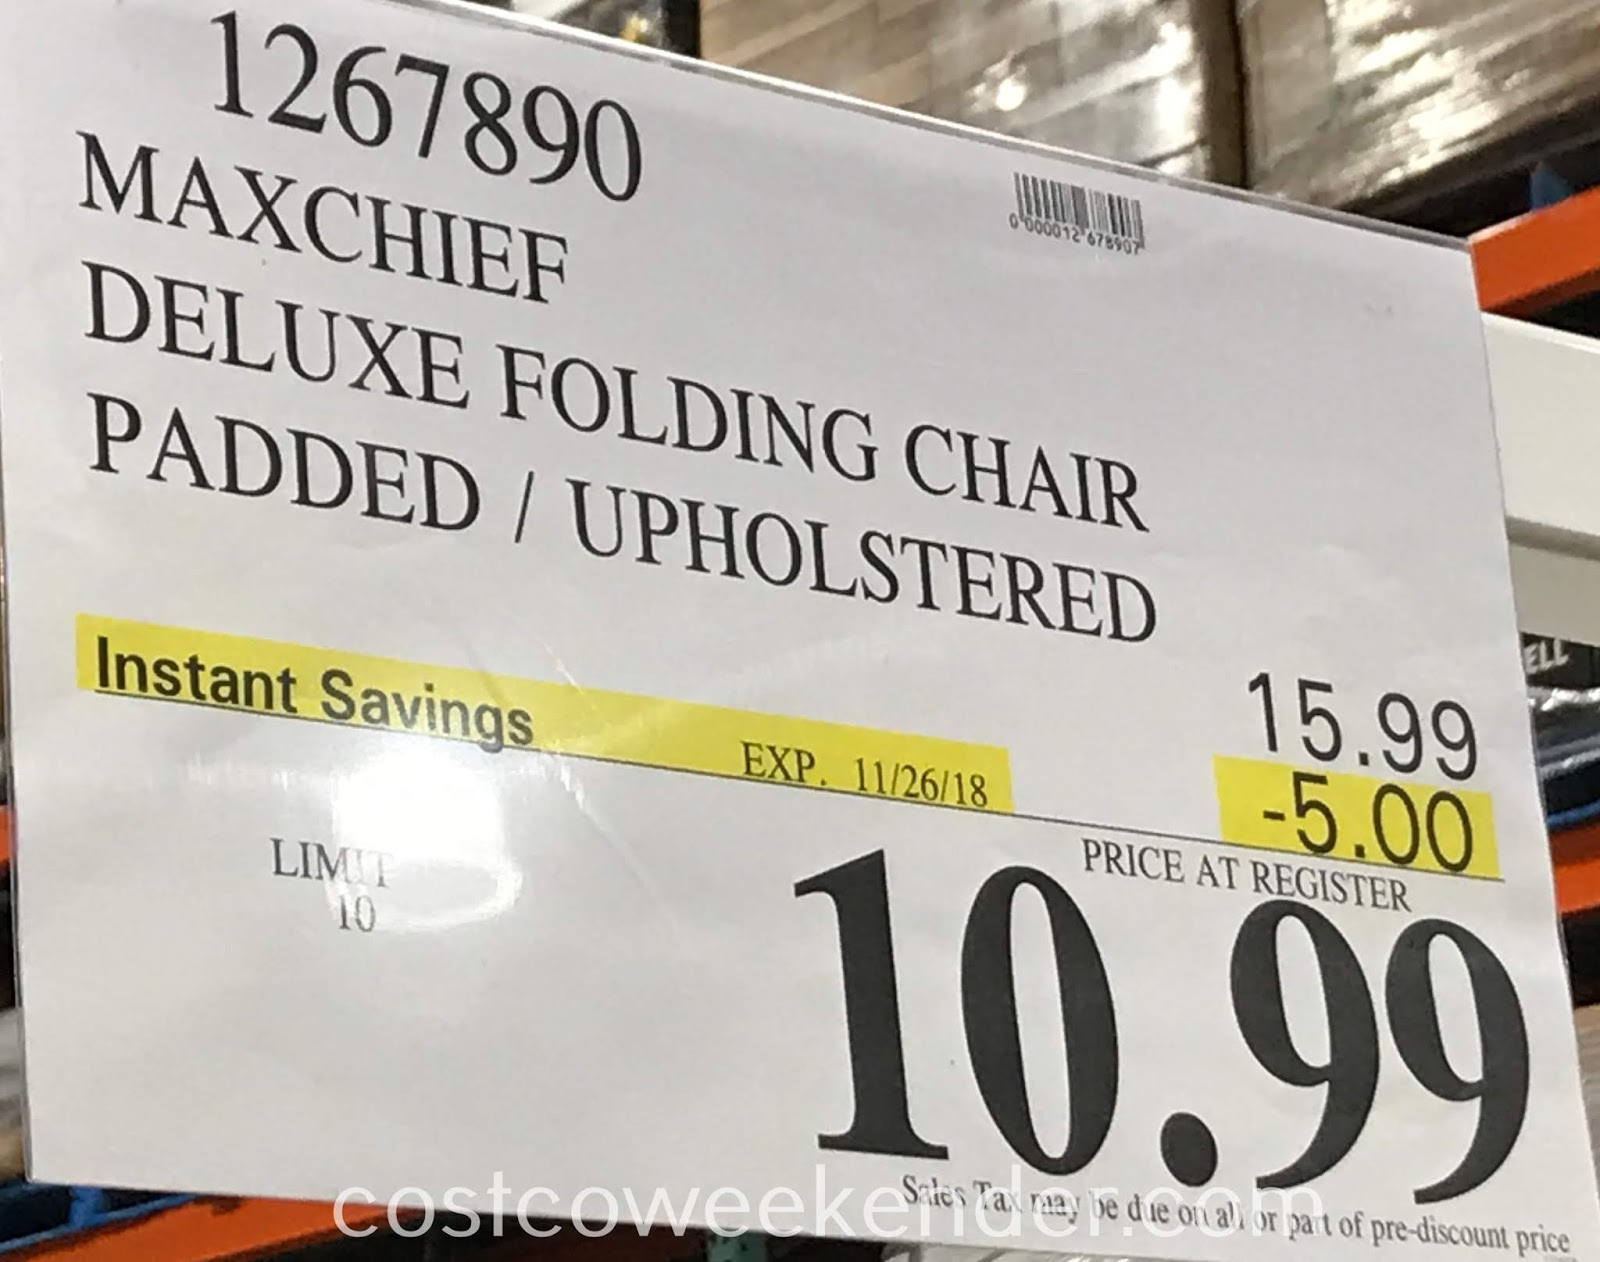 Deal for the Maxchief Upholstered Metal Folding Chair at Costco